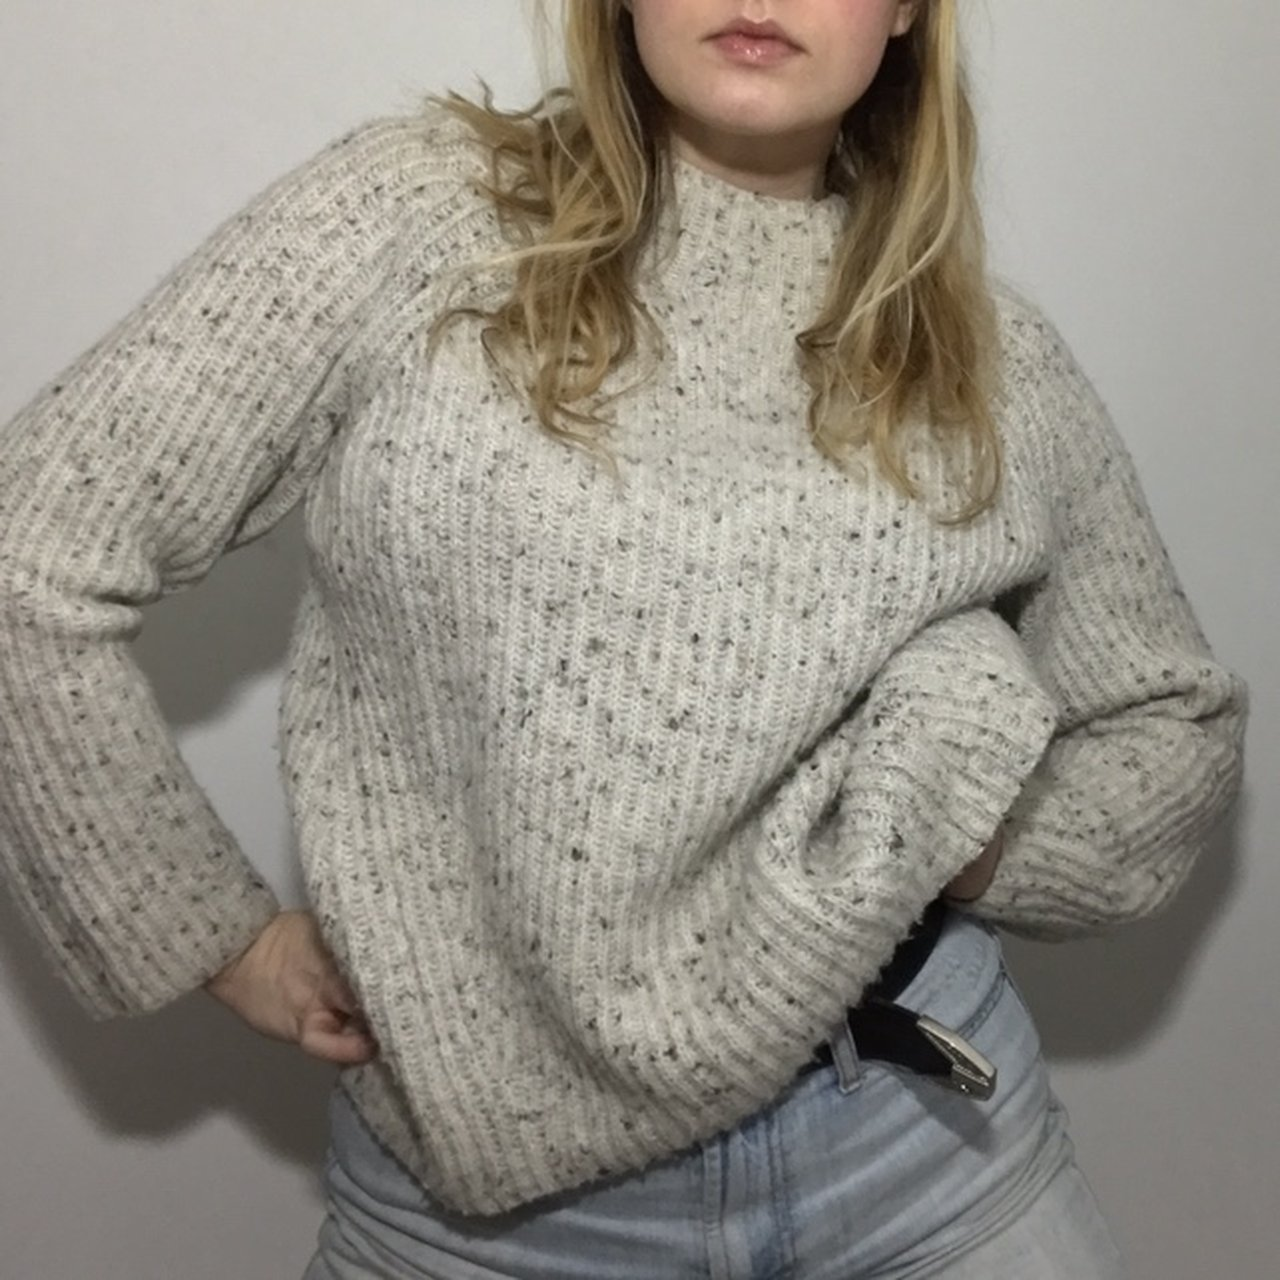 04a9f3f51e Off white cable knit sweater with black dots what does depop jpg 1280x1280 White  cable knit